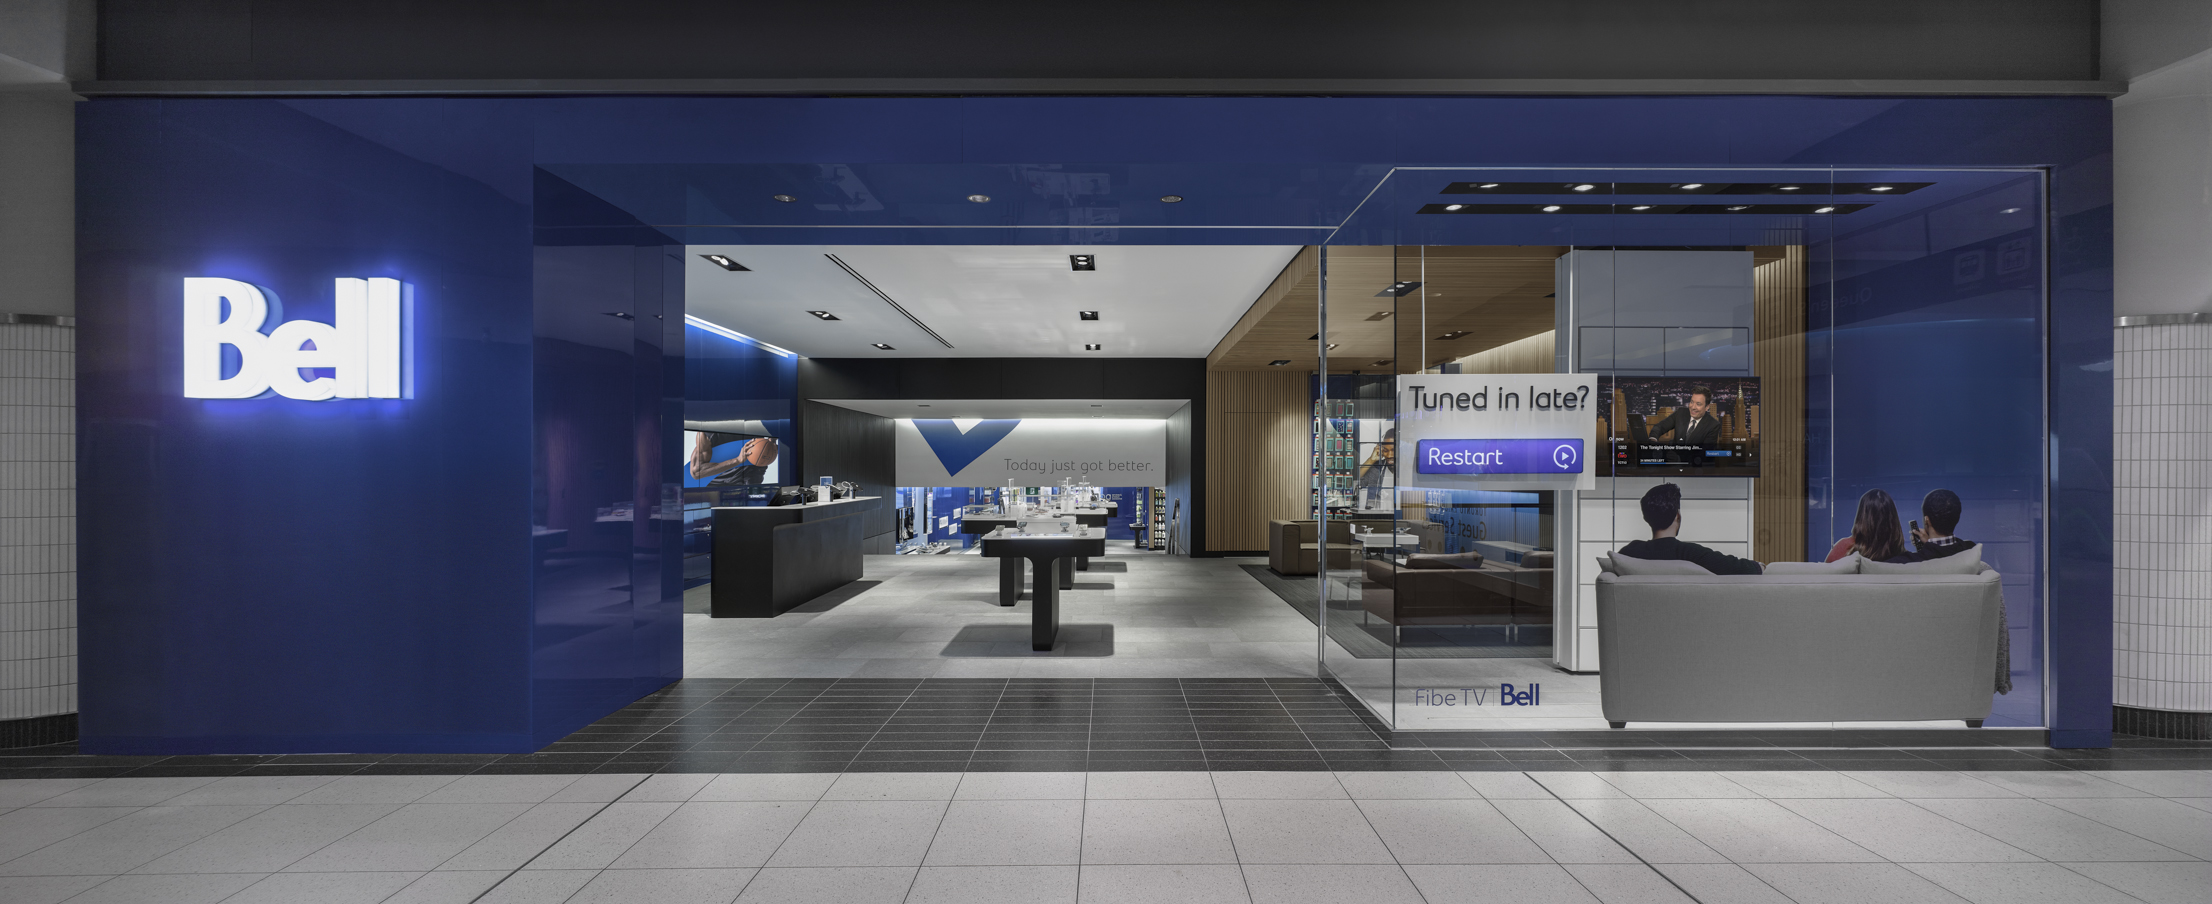 Bell raises monthly share plan prices, eliminates BYOD